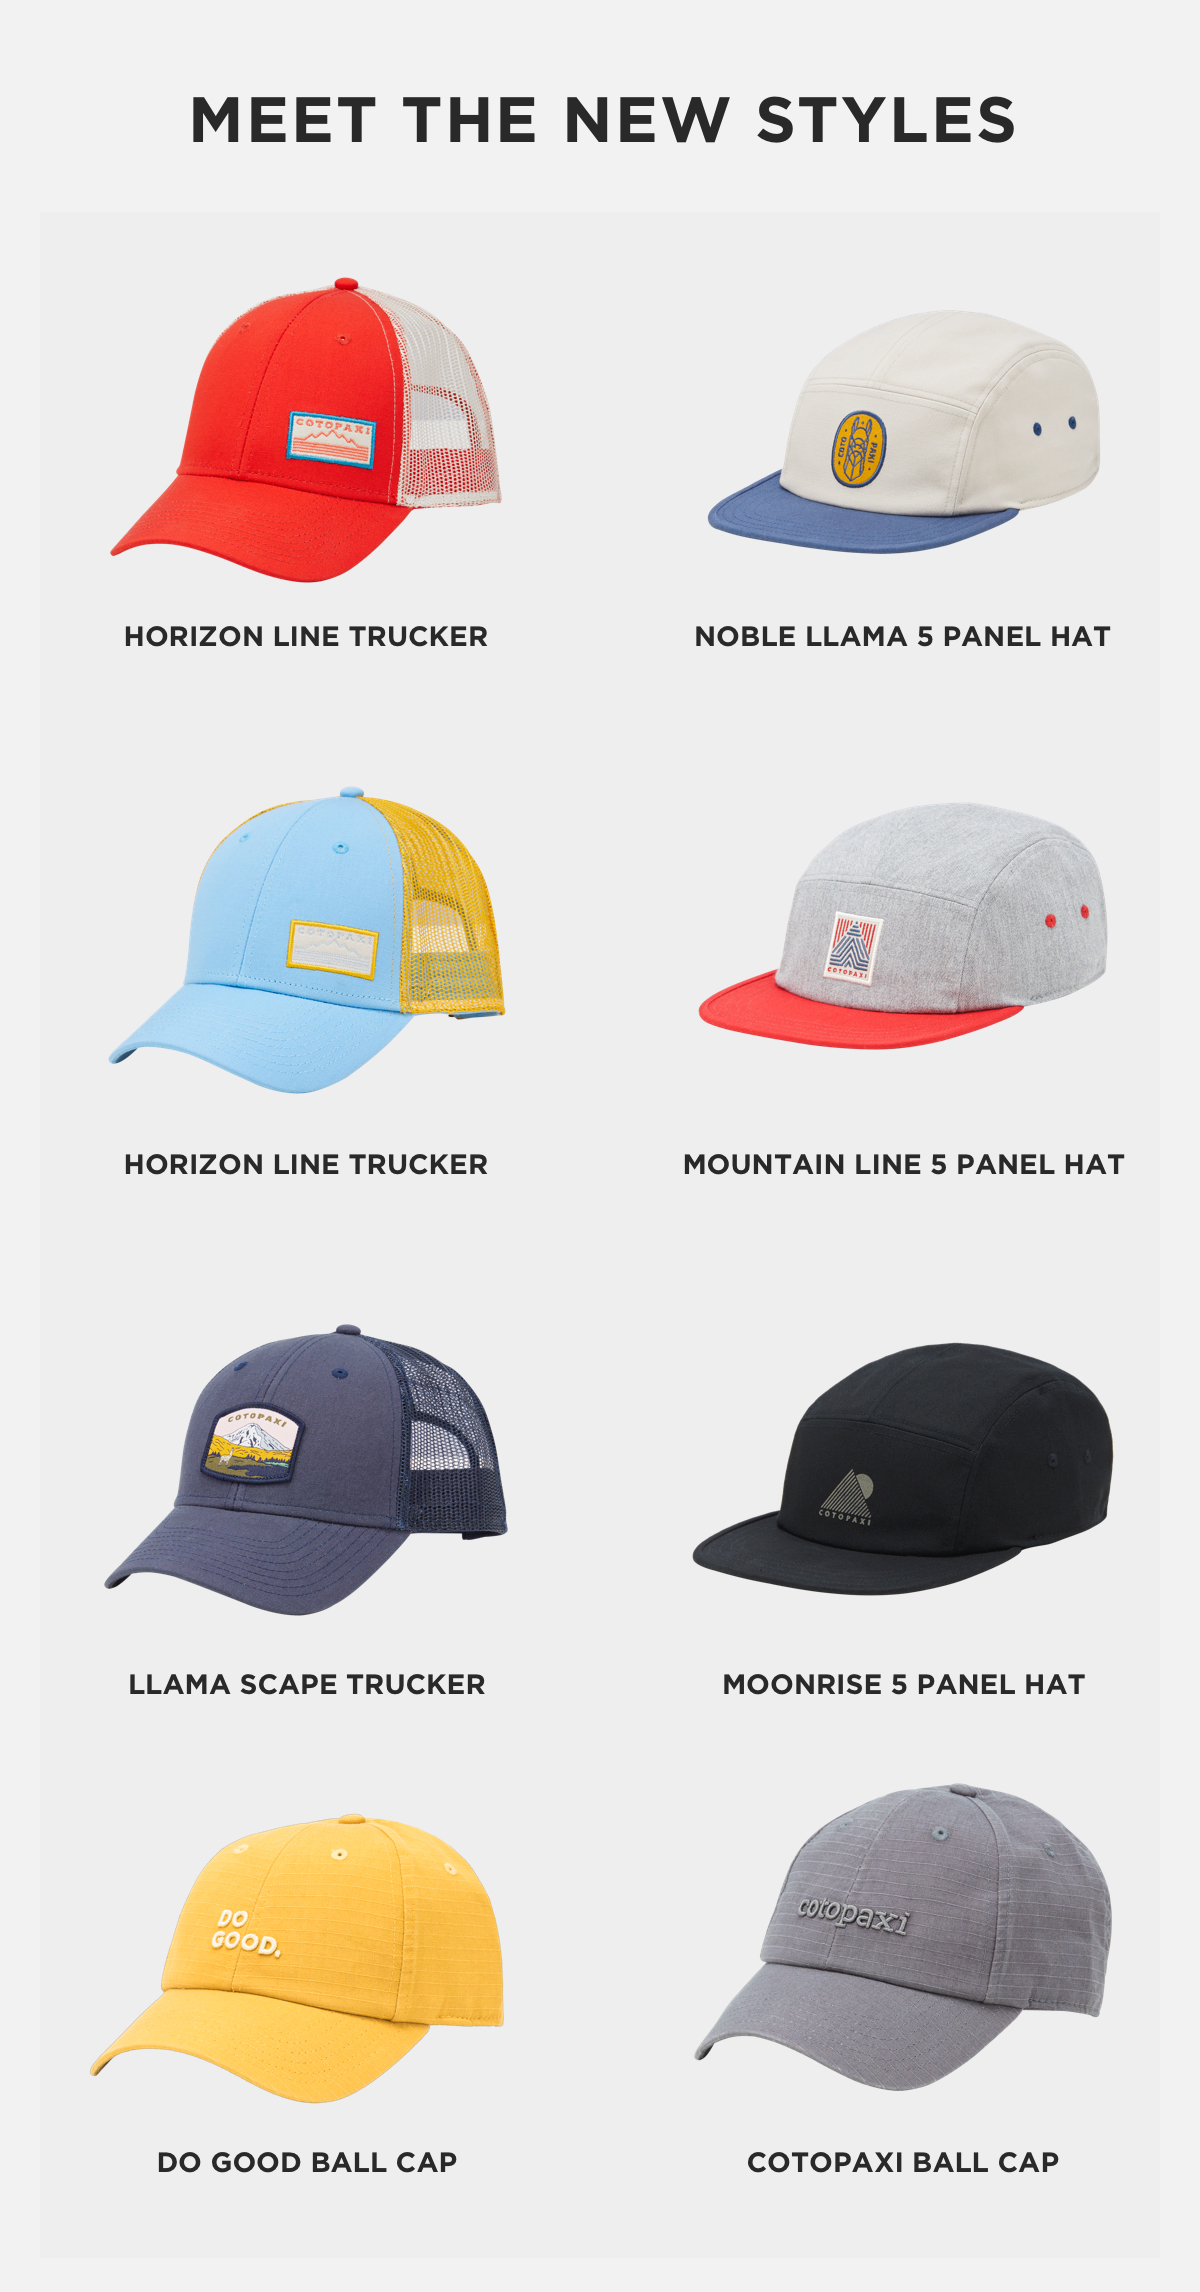 e65bdf8eee2d5 Cotopaxi  New Arrivals—7 Fresh Hat Designs